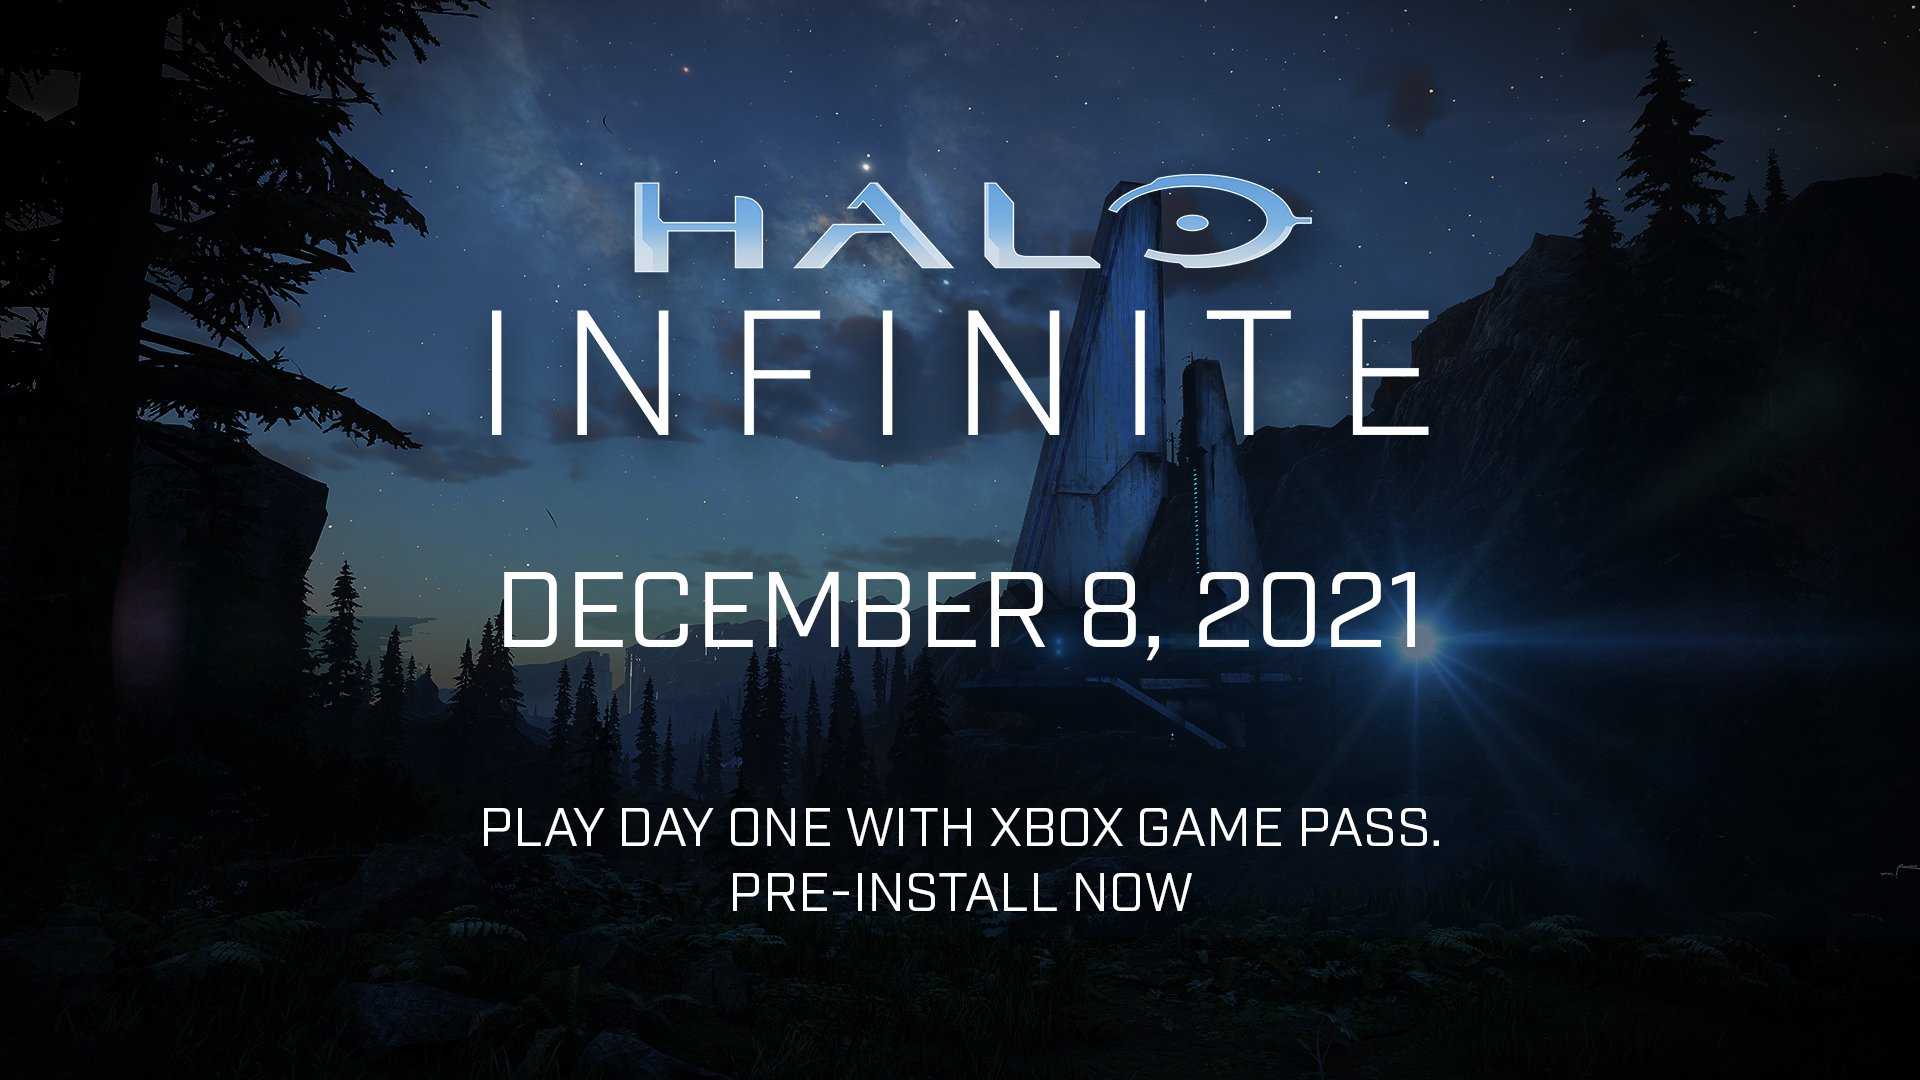 """Lanscape view of a Halo installation. Text reads """"Halo Infinite December 8, 2021"""" and """"Play day one with Xbox Game Pass"""" and """"Pre-install now"""""""